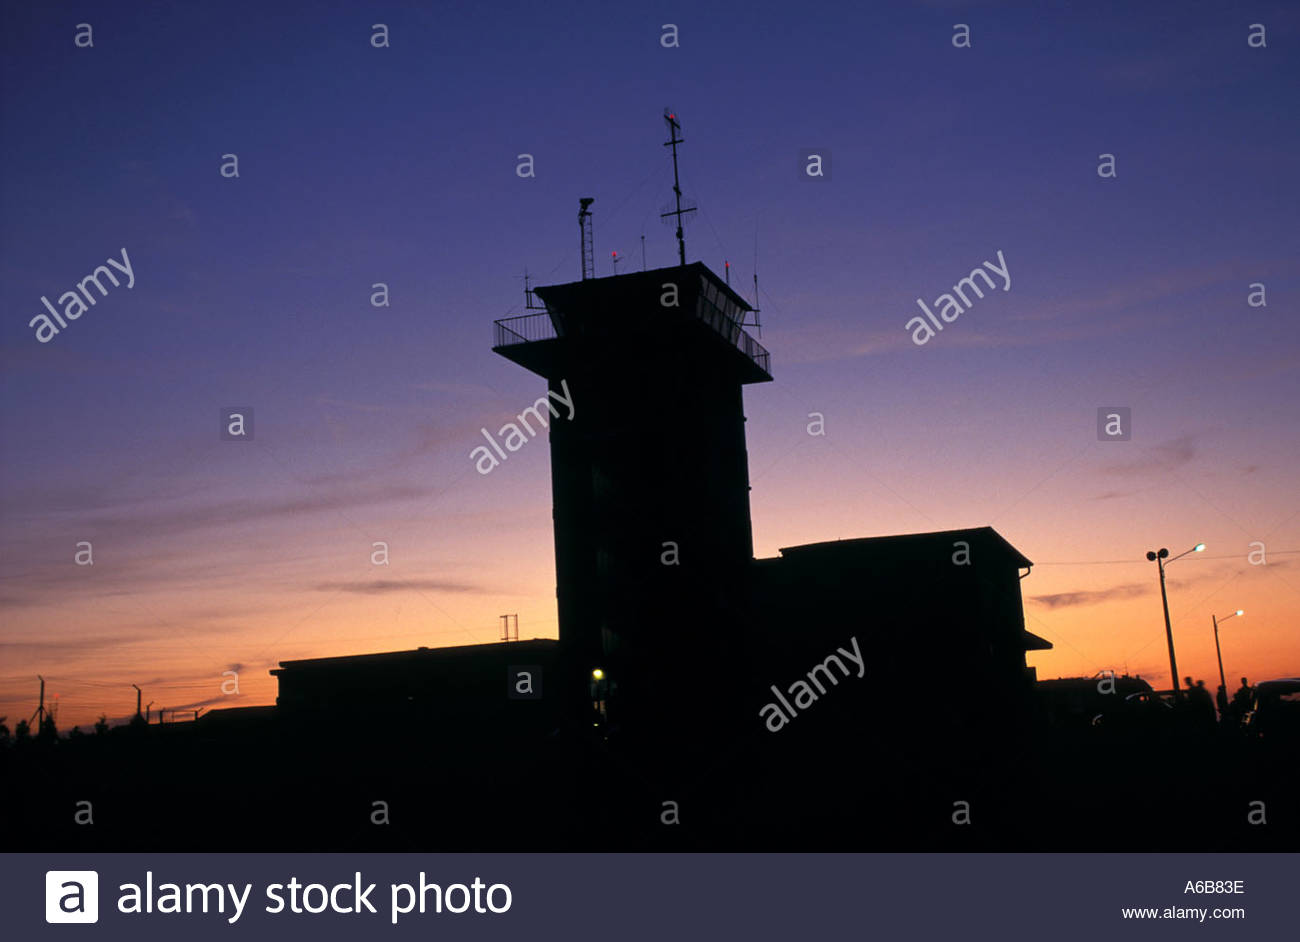 Aerial Transport Control Tower - Stock Image